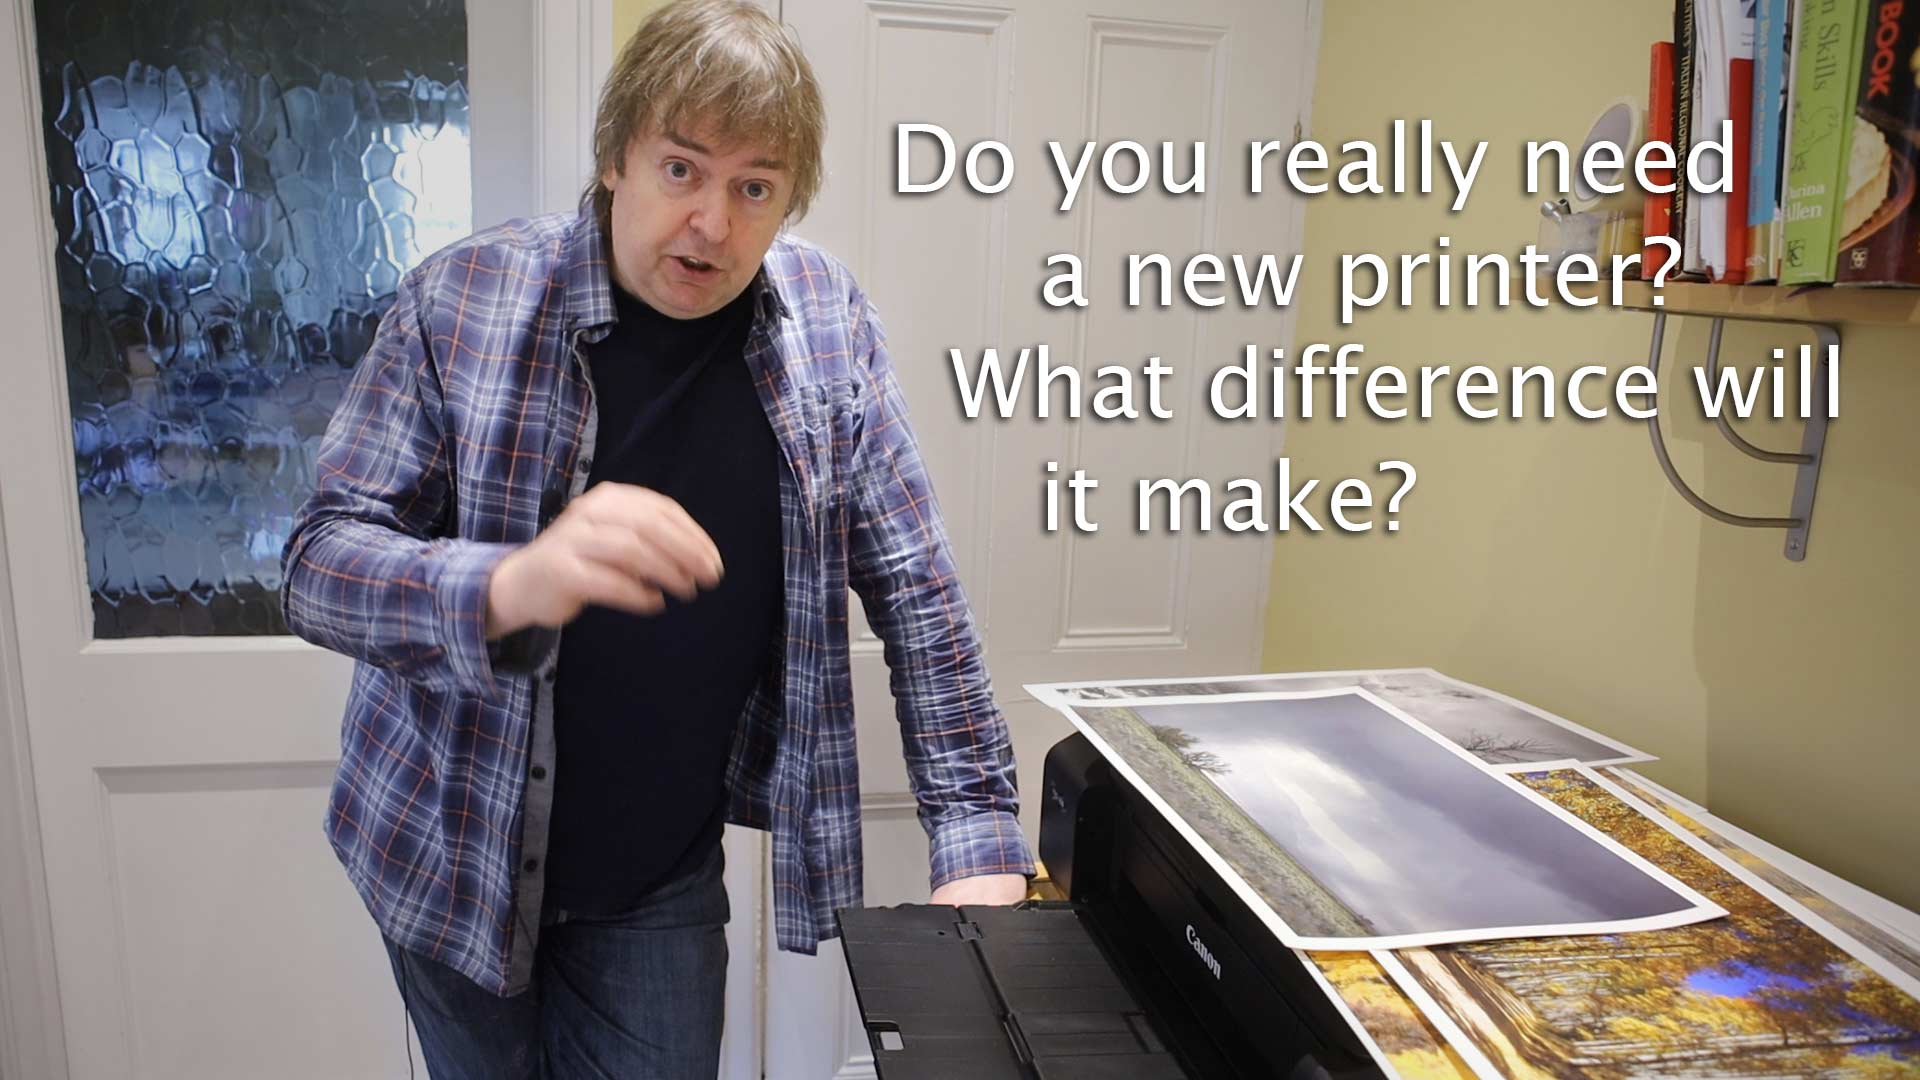 Do you need a new printer